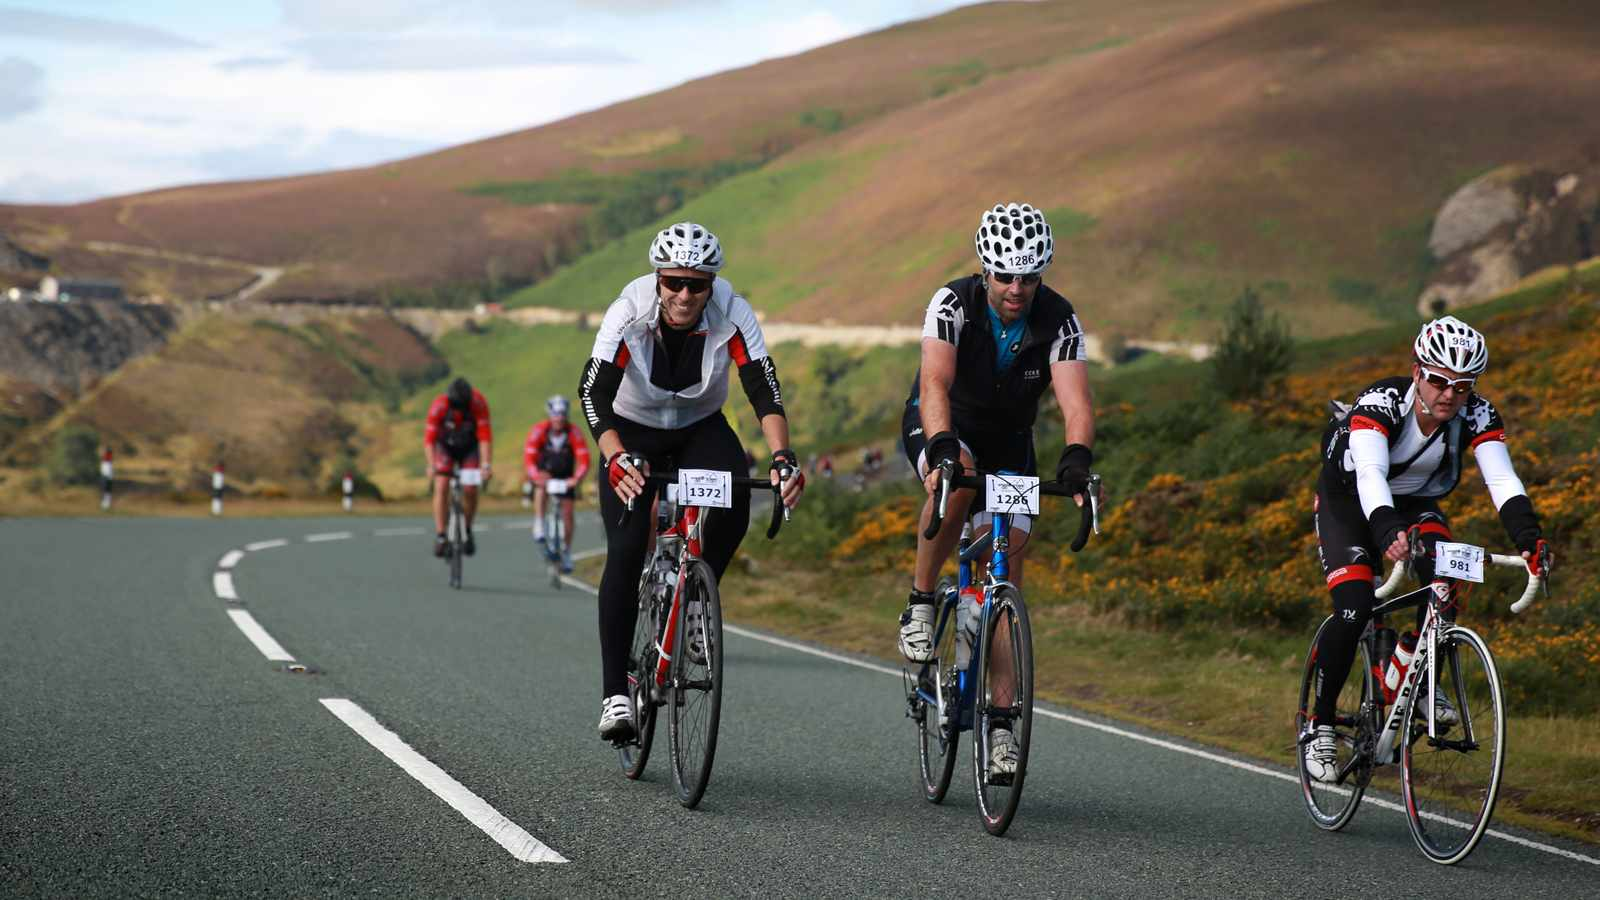 The Etape Cymru is a rare chance to ride a gorgeous route, traffic-free